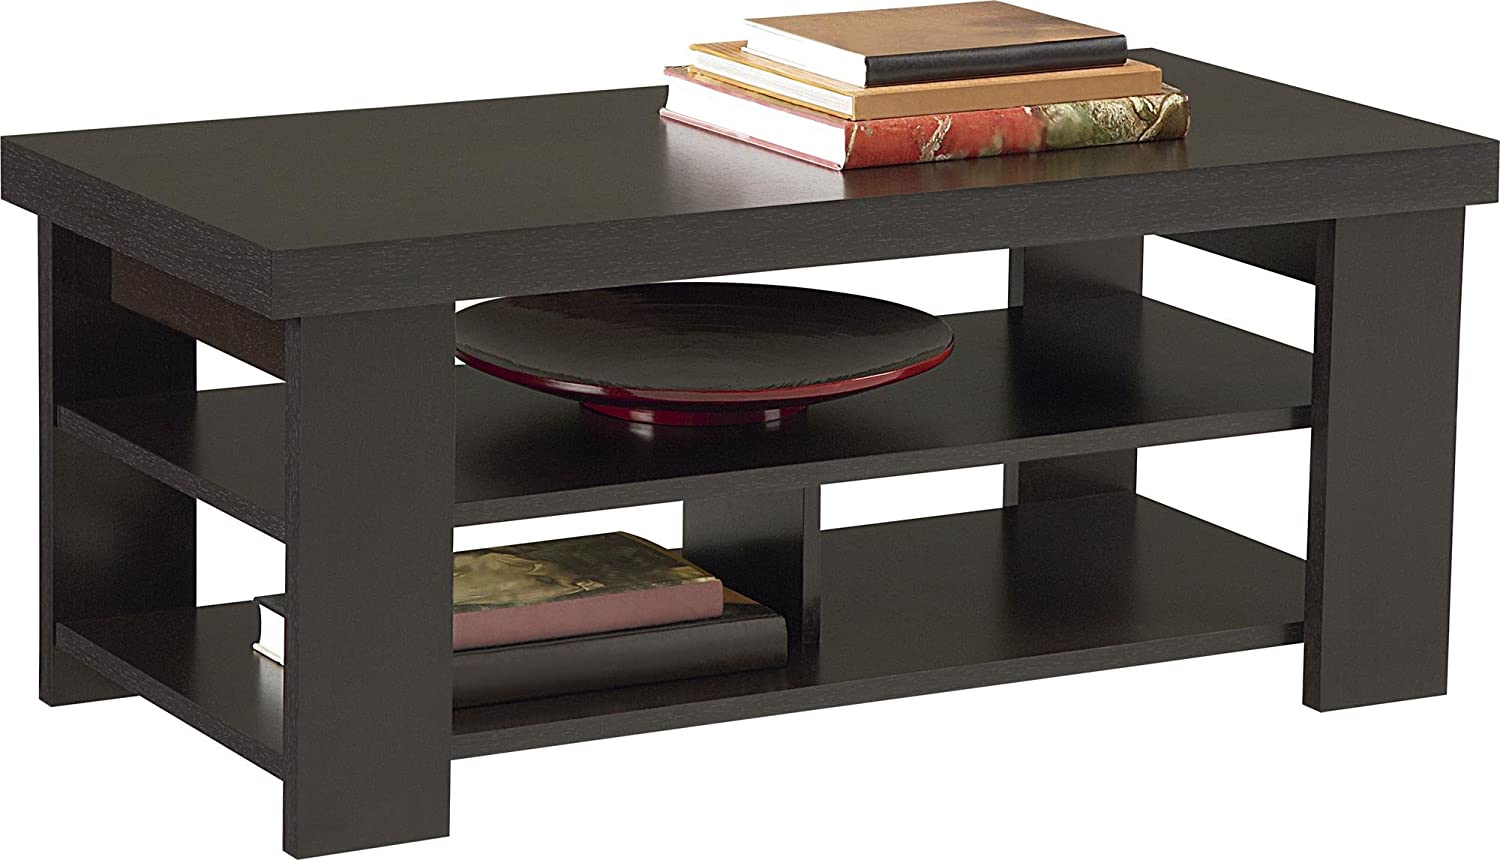 Black modern coffee table - Black Modern Coffee Table 24